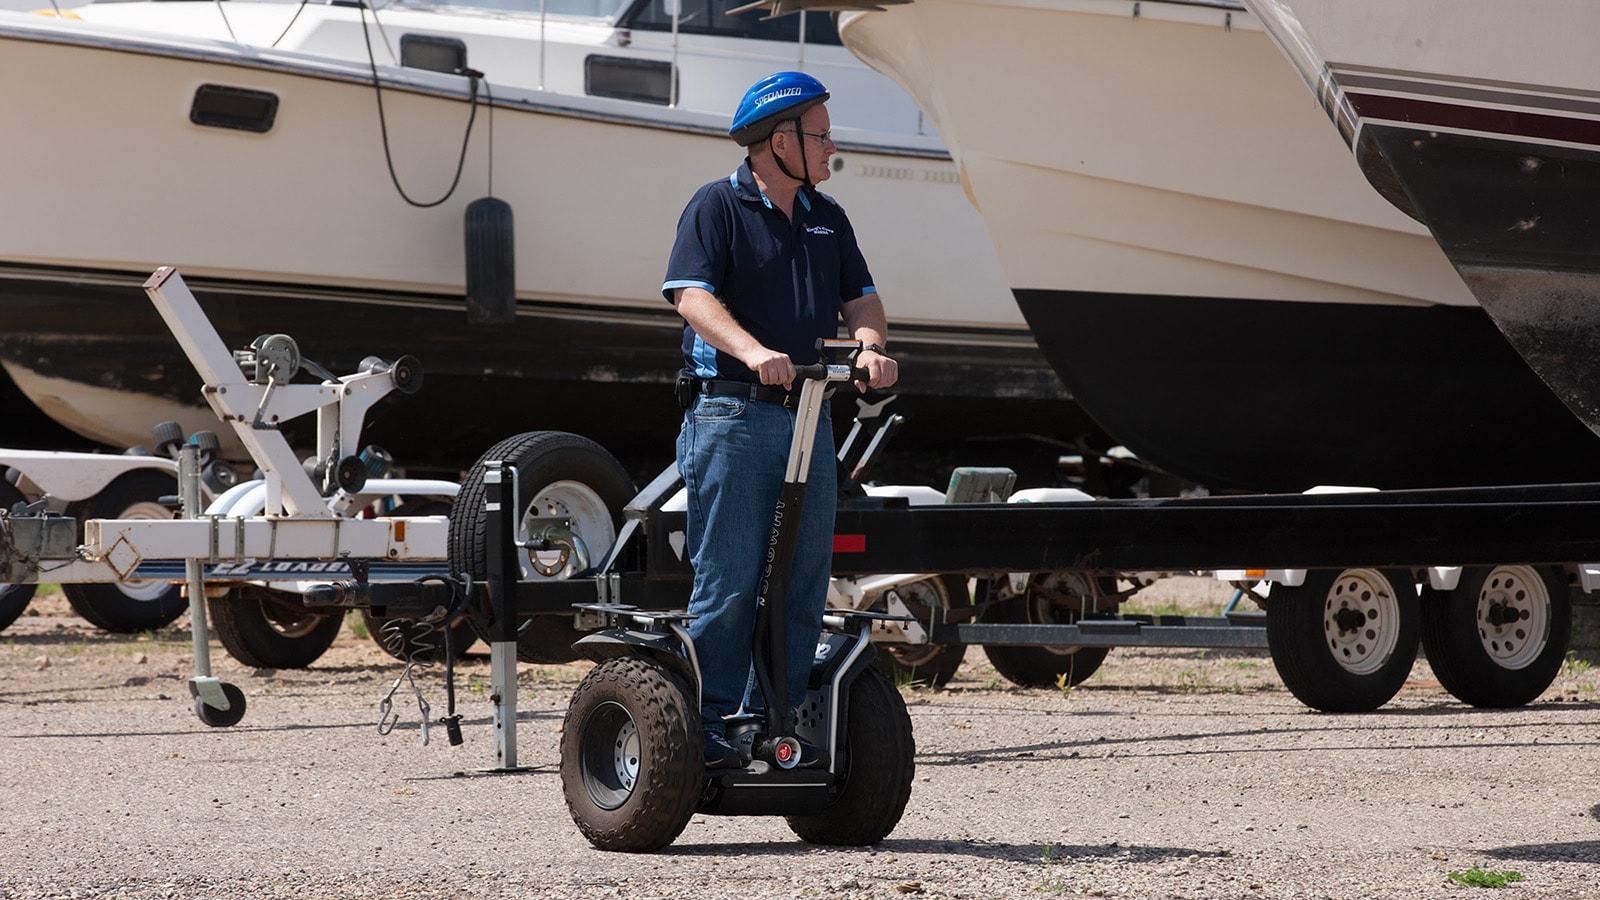 Bill King surveys his boat marina on his Segway.